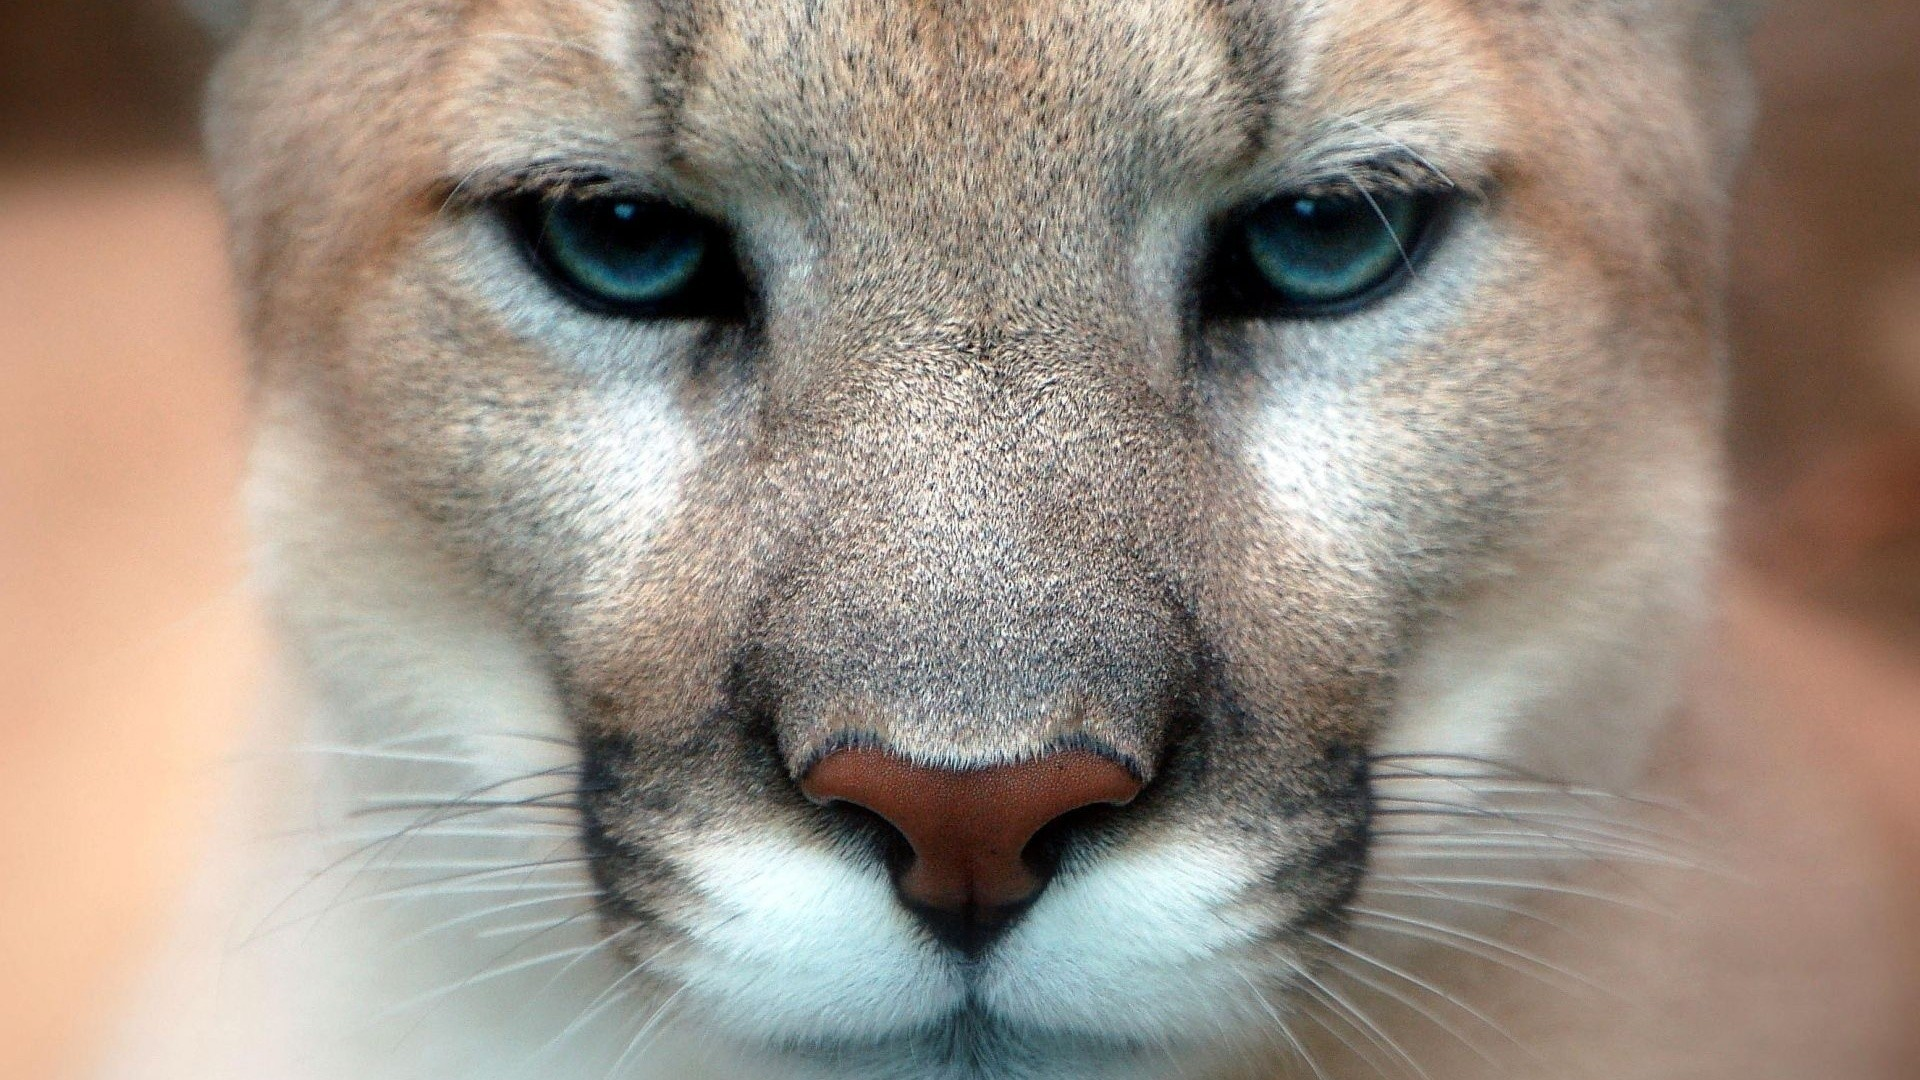 General 1920x1080 animals feline nature pumas cougars